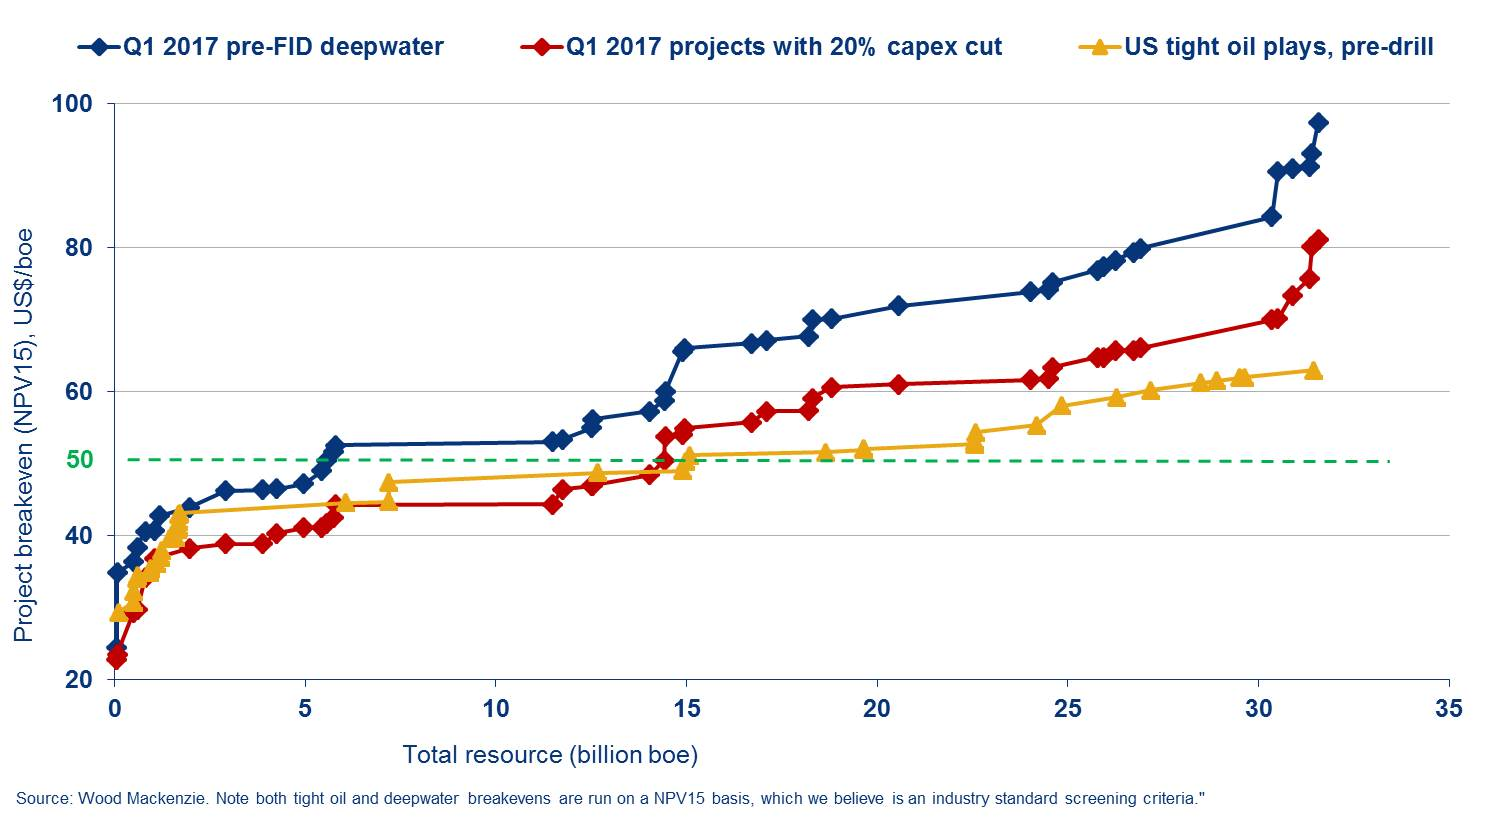 Revival of deepwater industry: best projects closing gap on shale oil